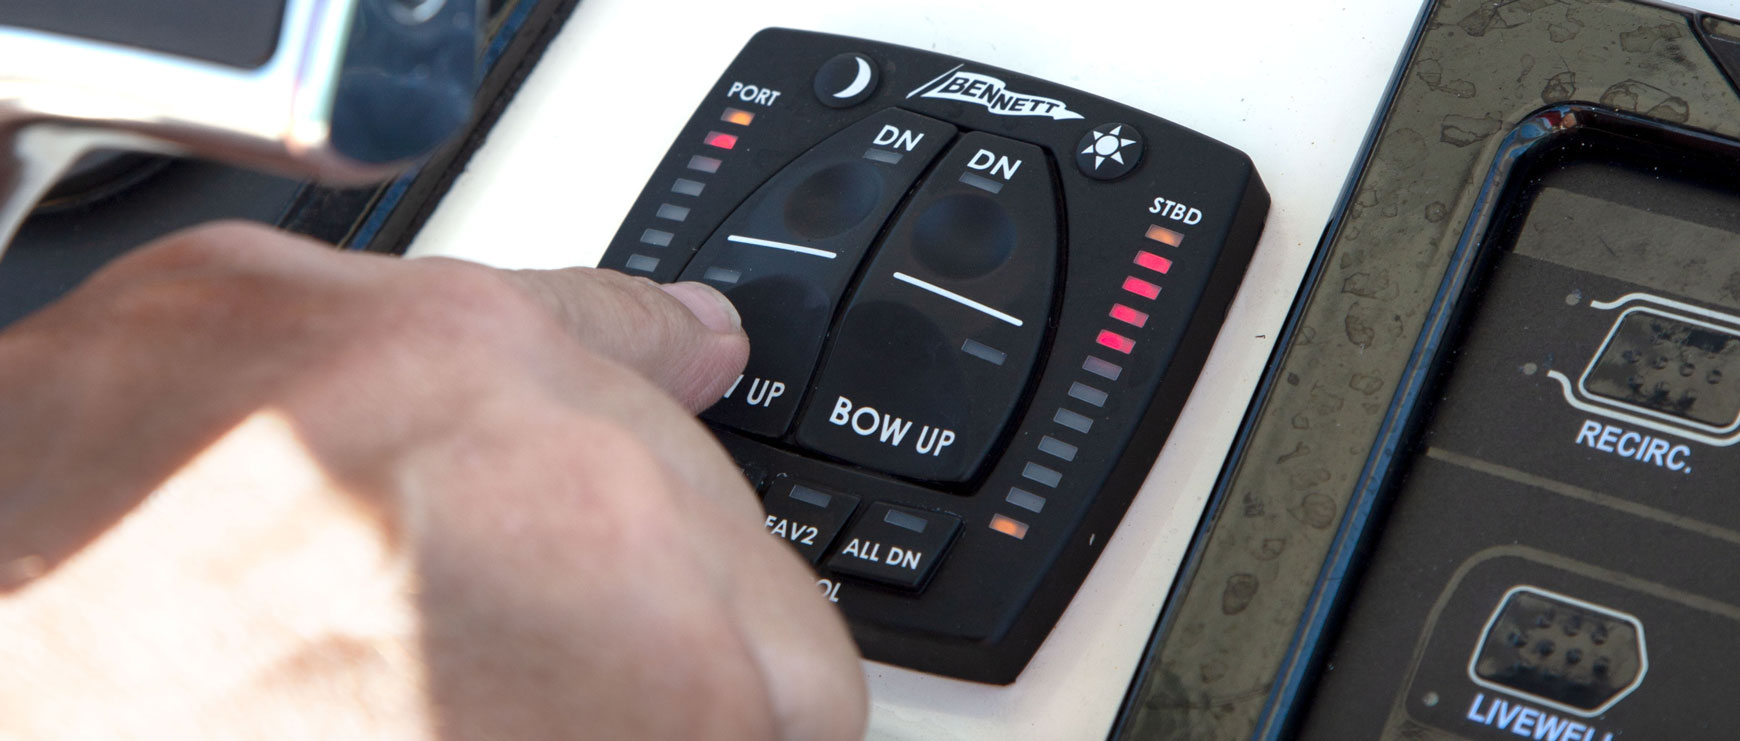 Bennett Trim Tabs User Manual Atc Automatic Tab Controller Installation In A Boat Invented By Marine Auto Control Features Have Been Maintaining Since 1992